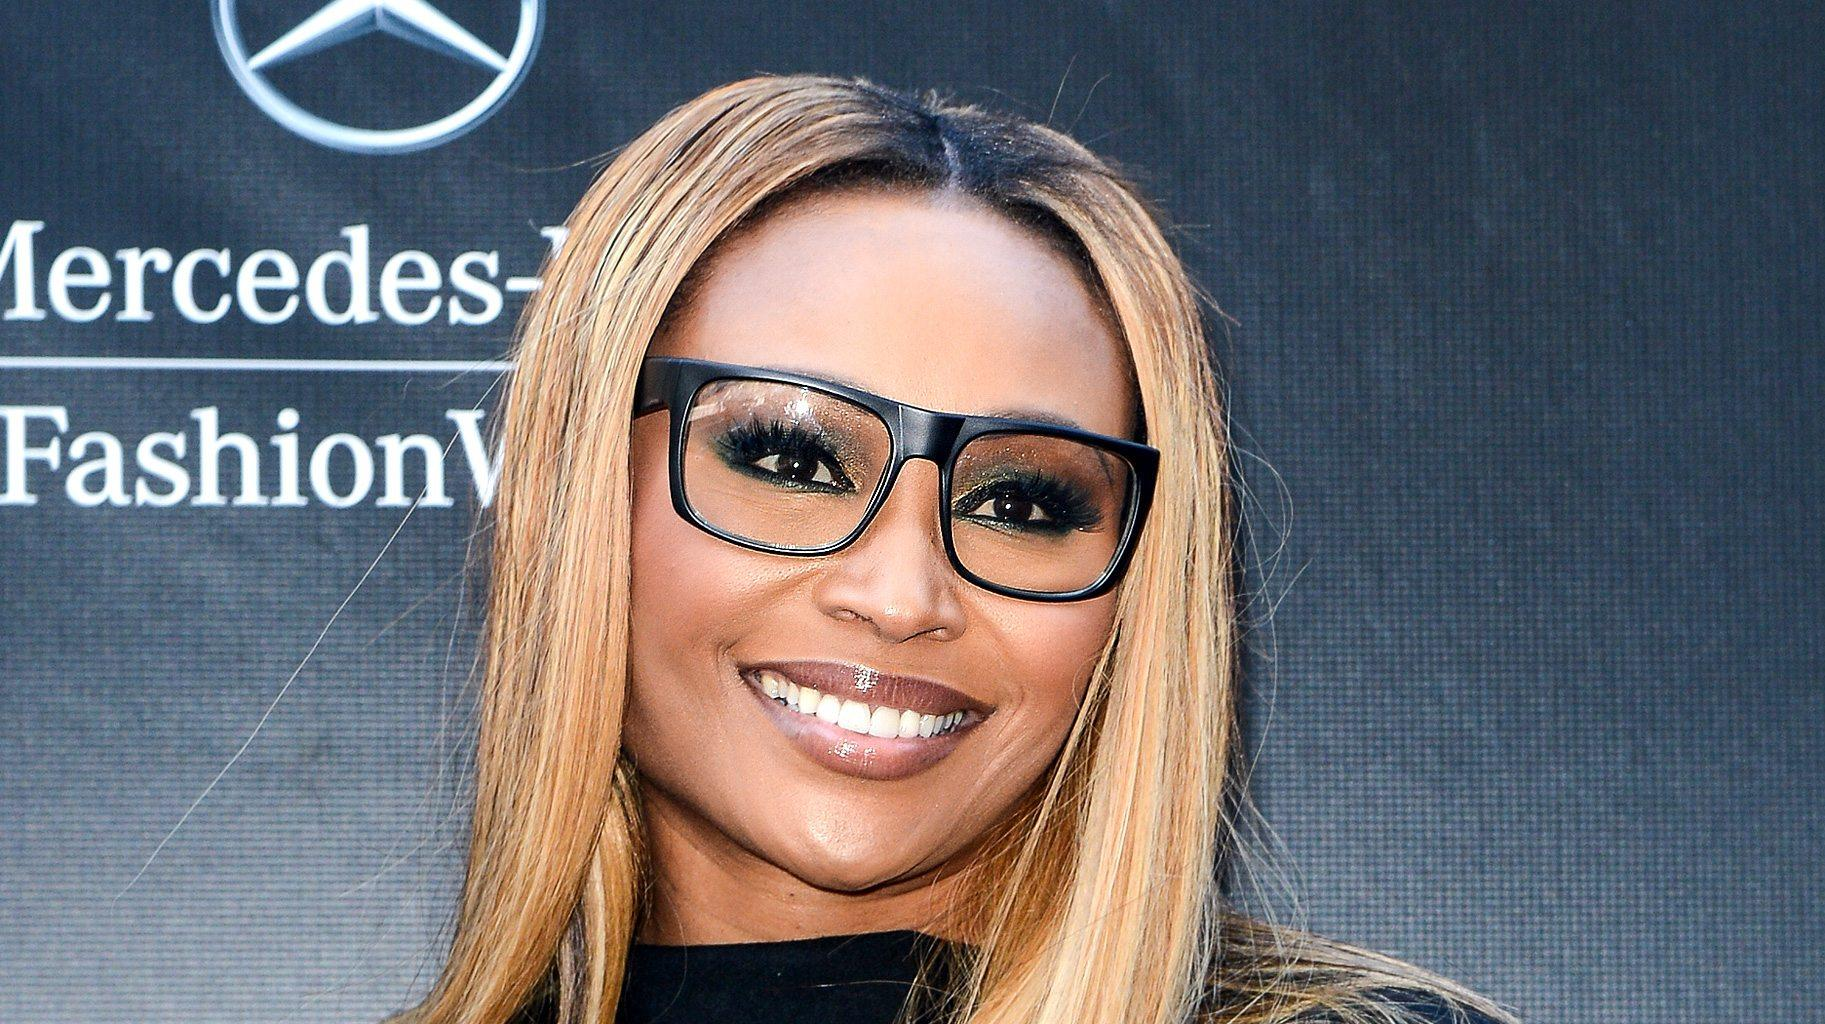 Cynthia Bailey Channels 50 Cent For Halloween - Check Out Her Photo